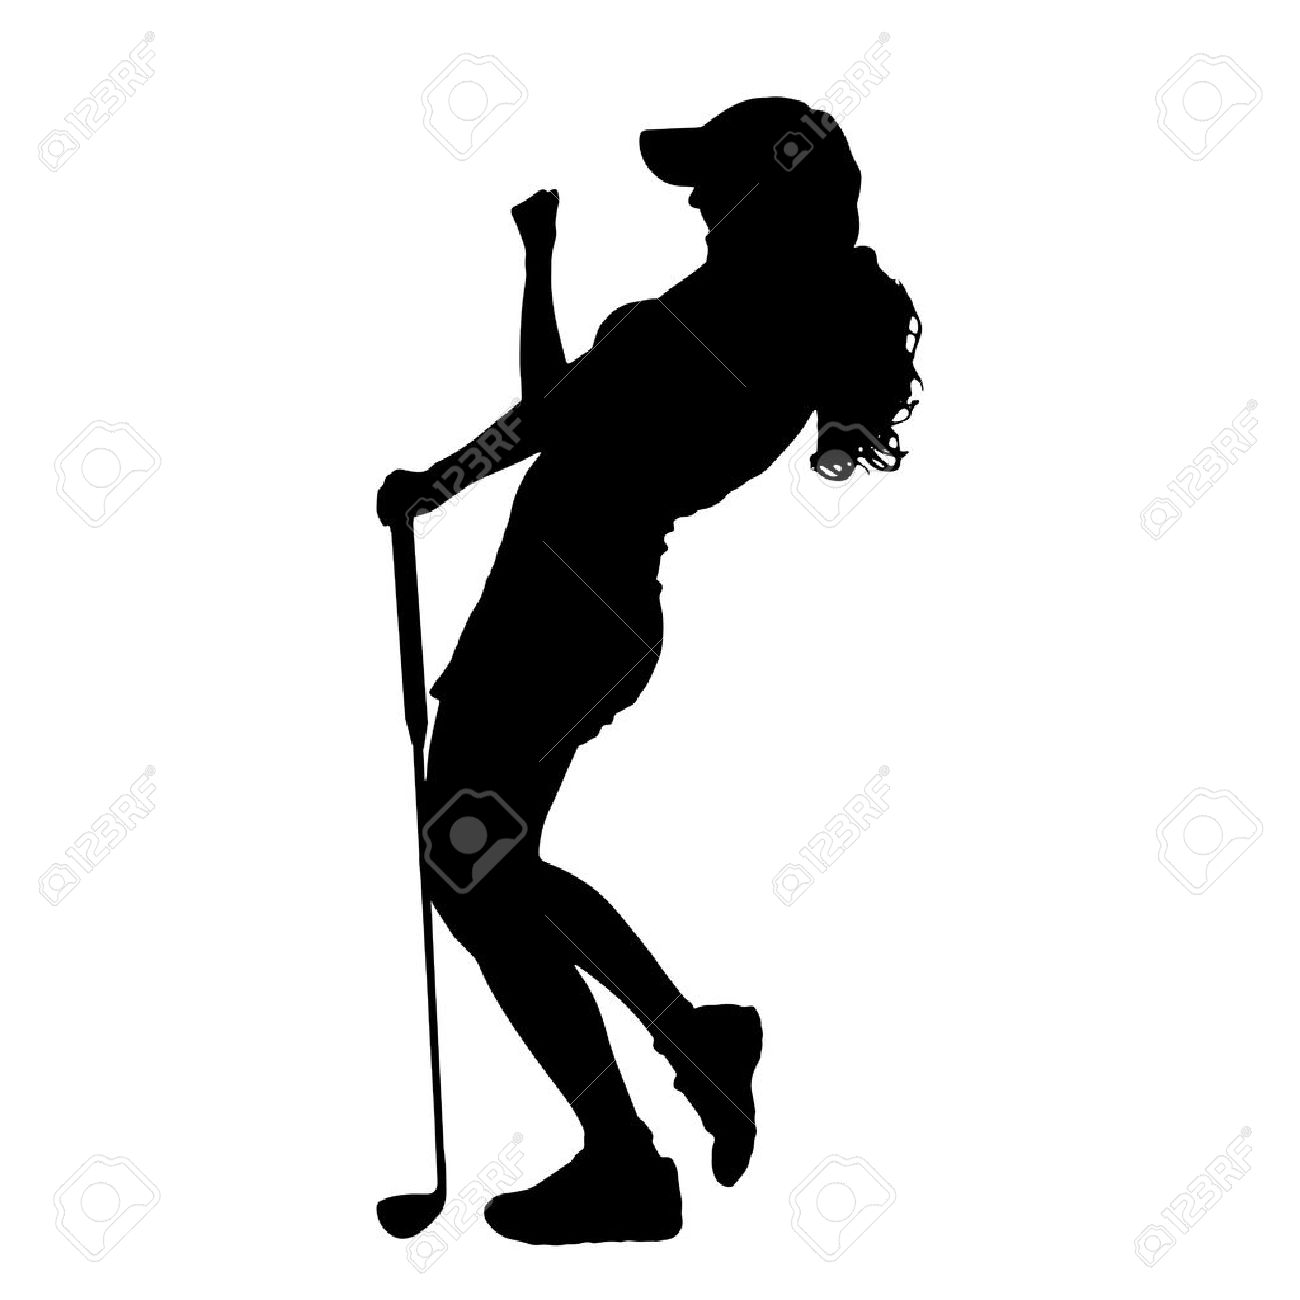 1300x1300 Vector Silhouette Of The Woman Who Plays Golf. Royalty Free